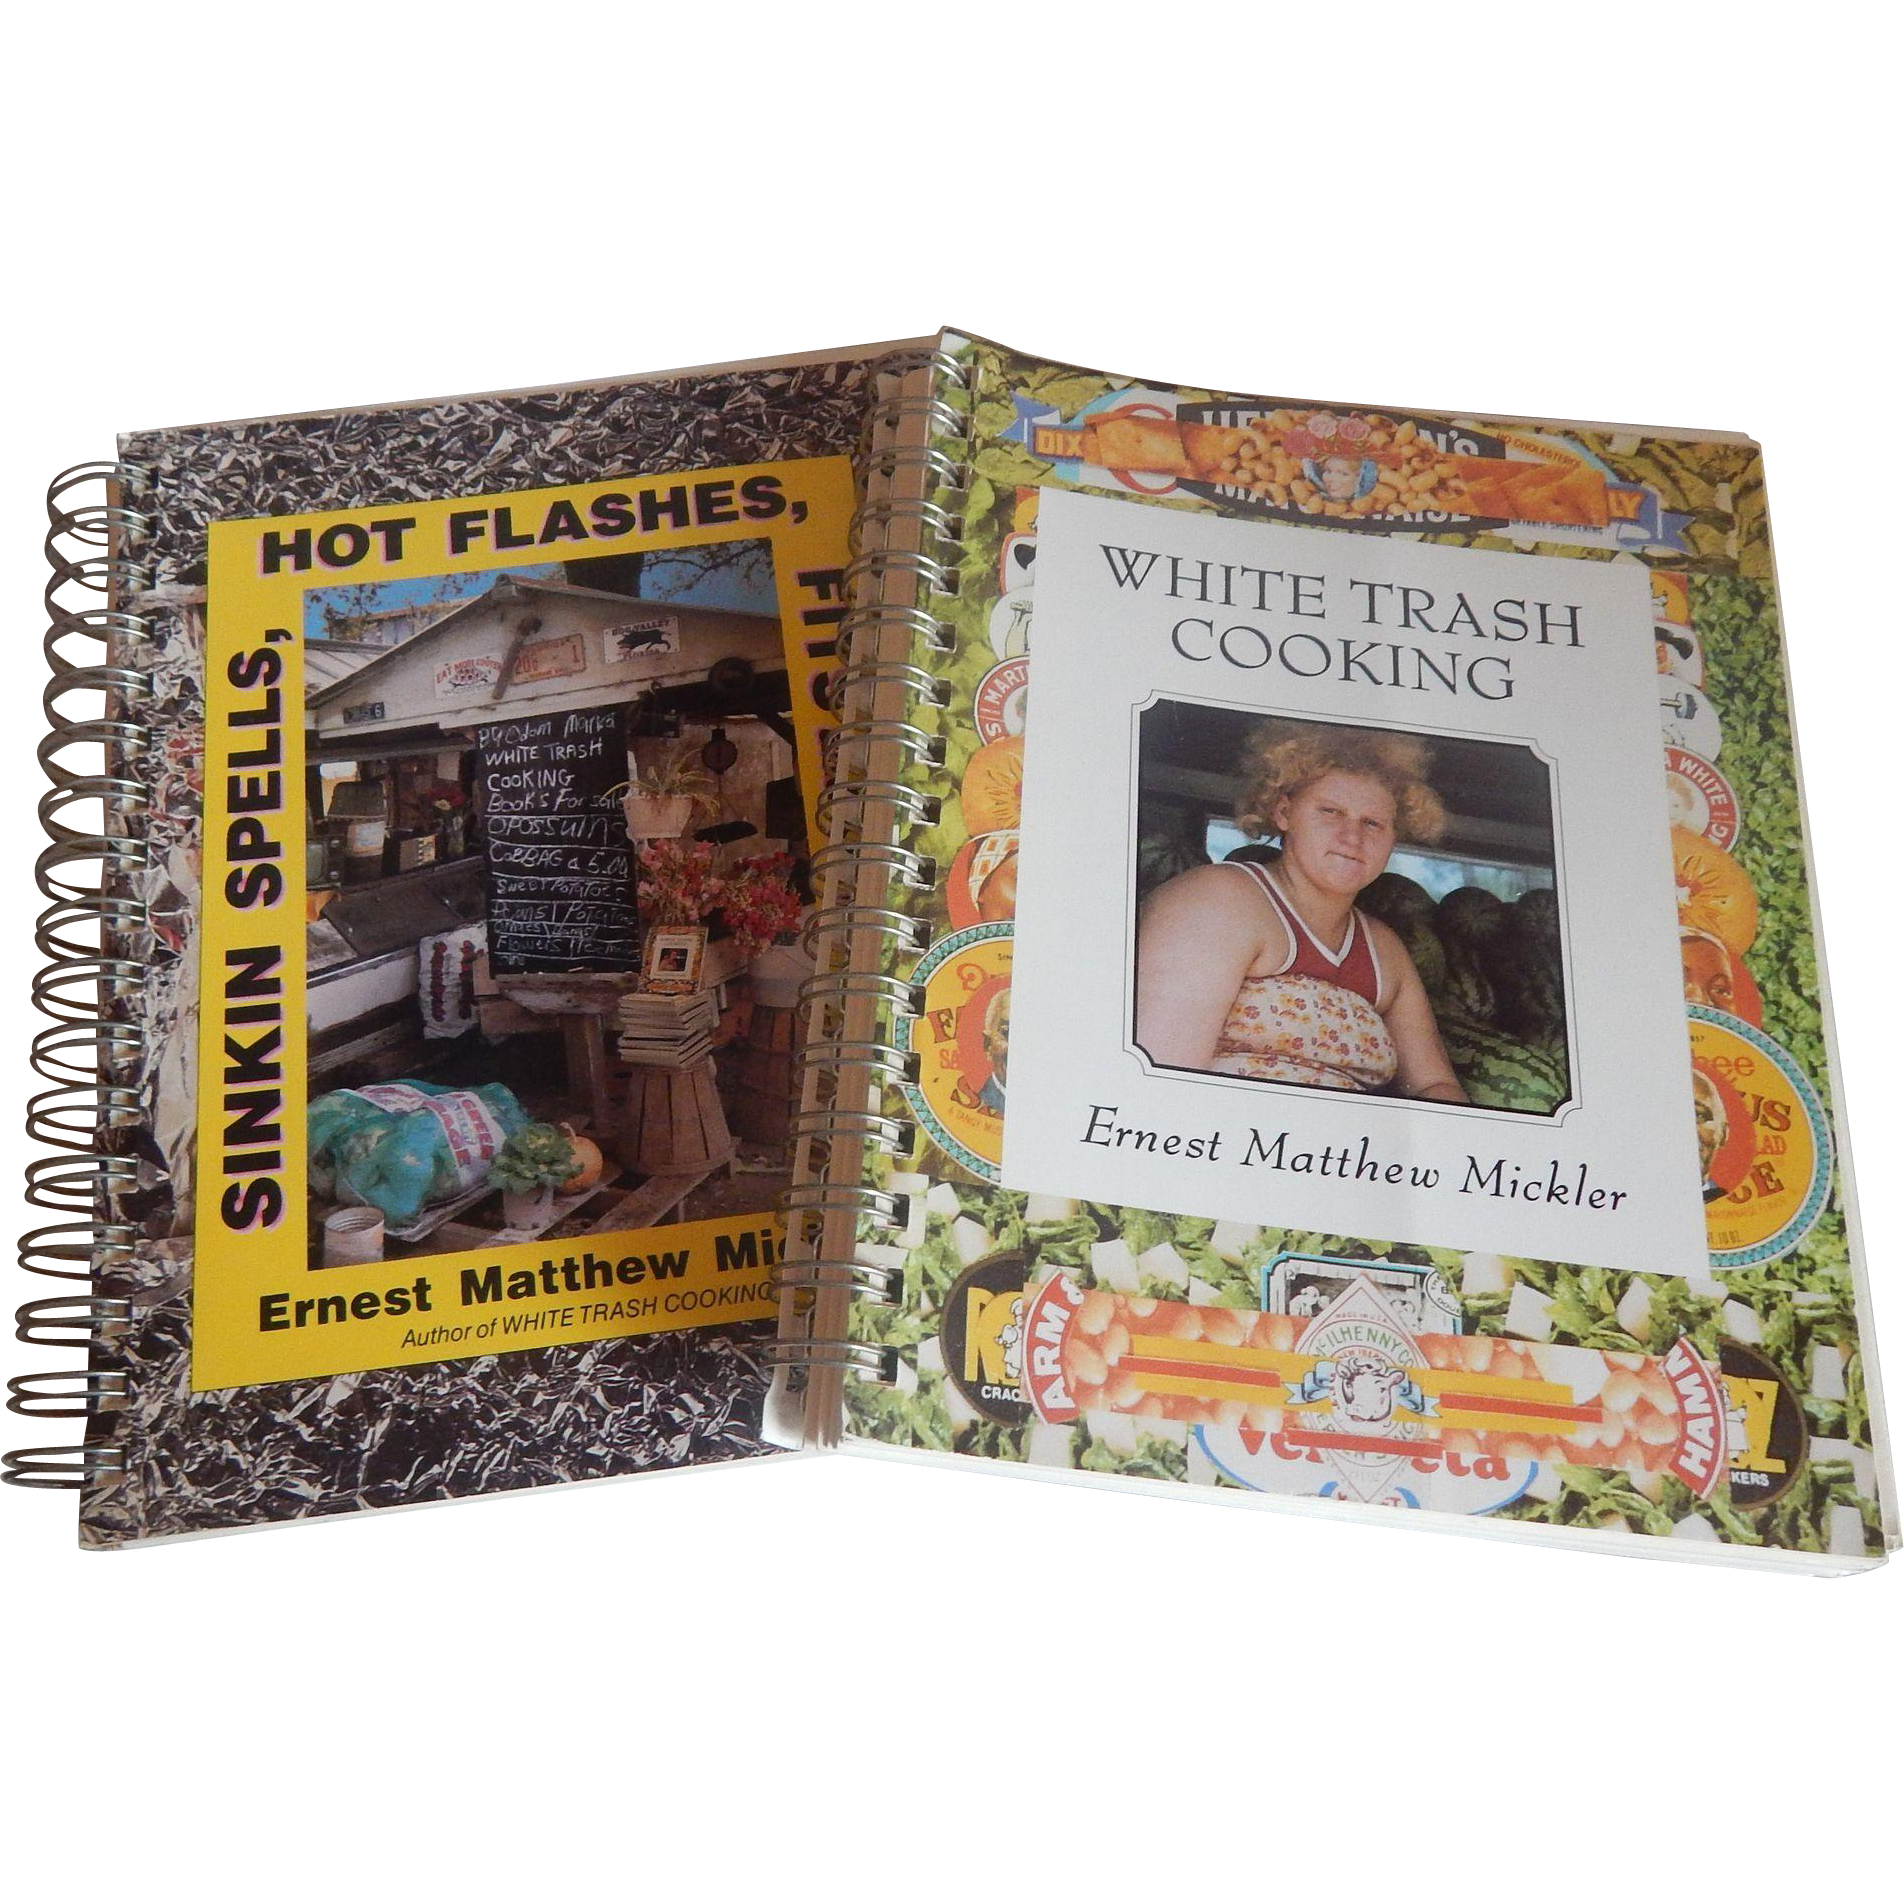 Two Ernest Matthew Mickler Cookbooks plus a bonus one